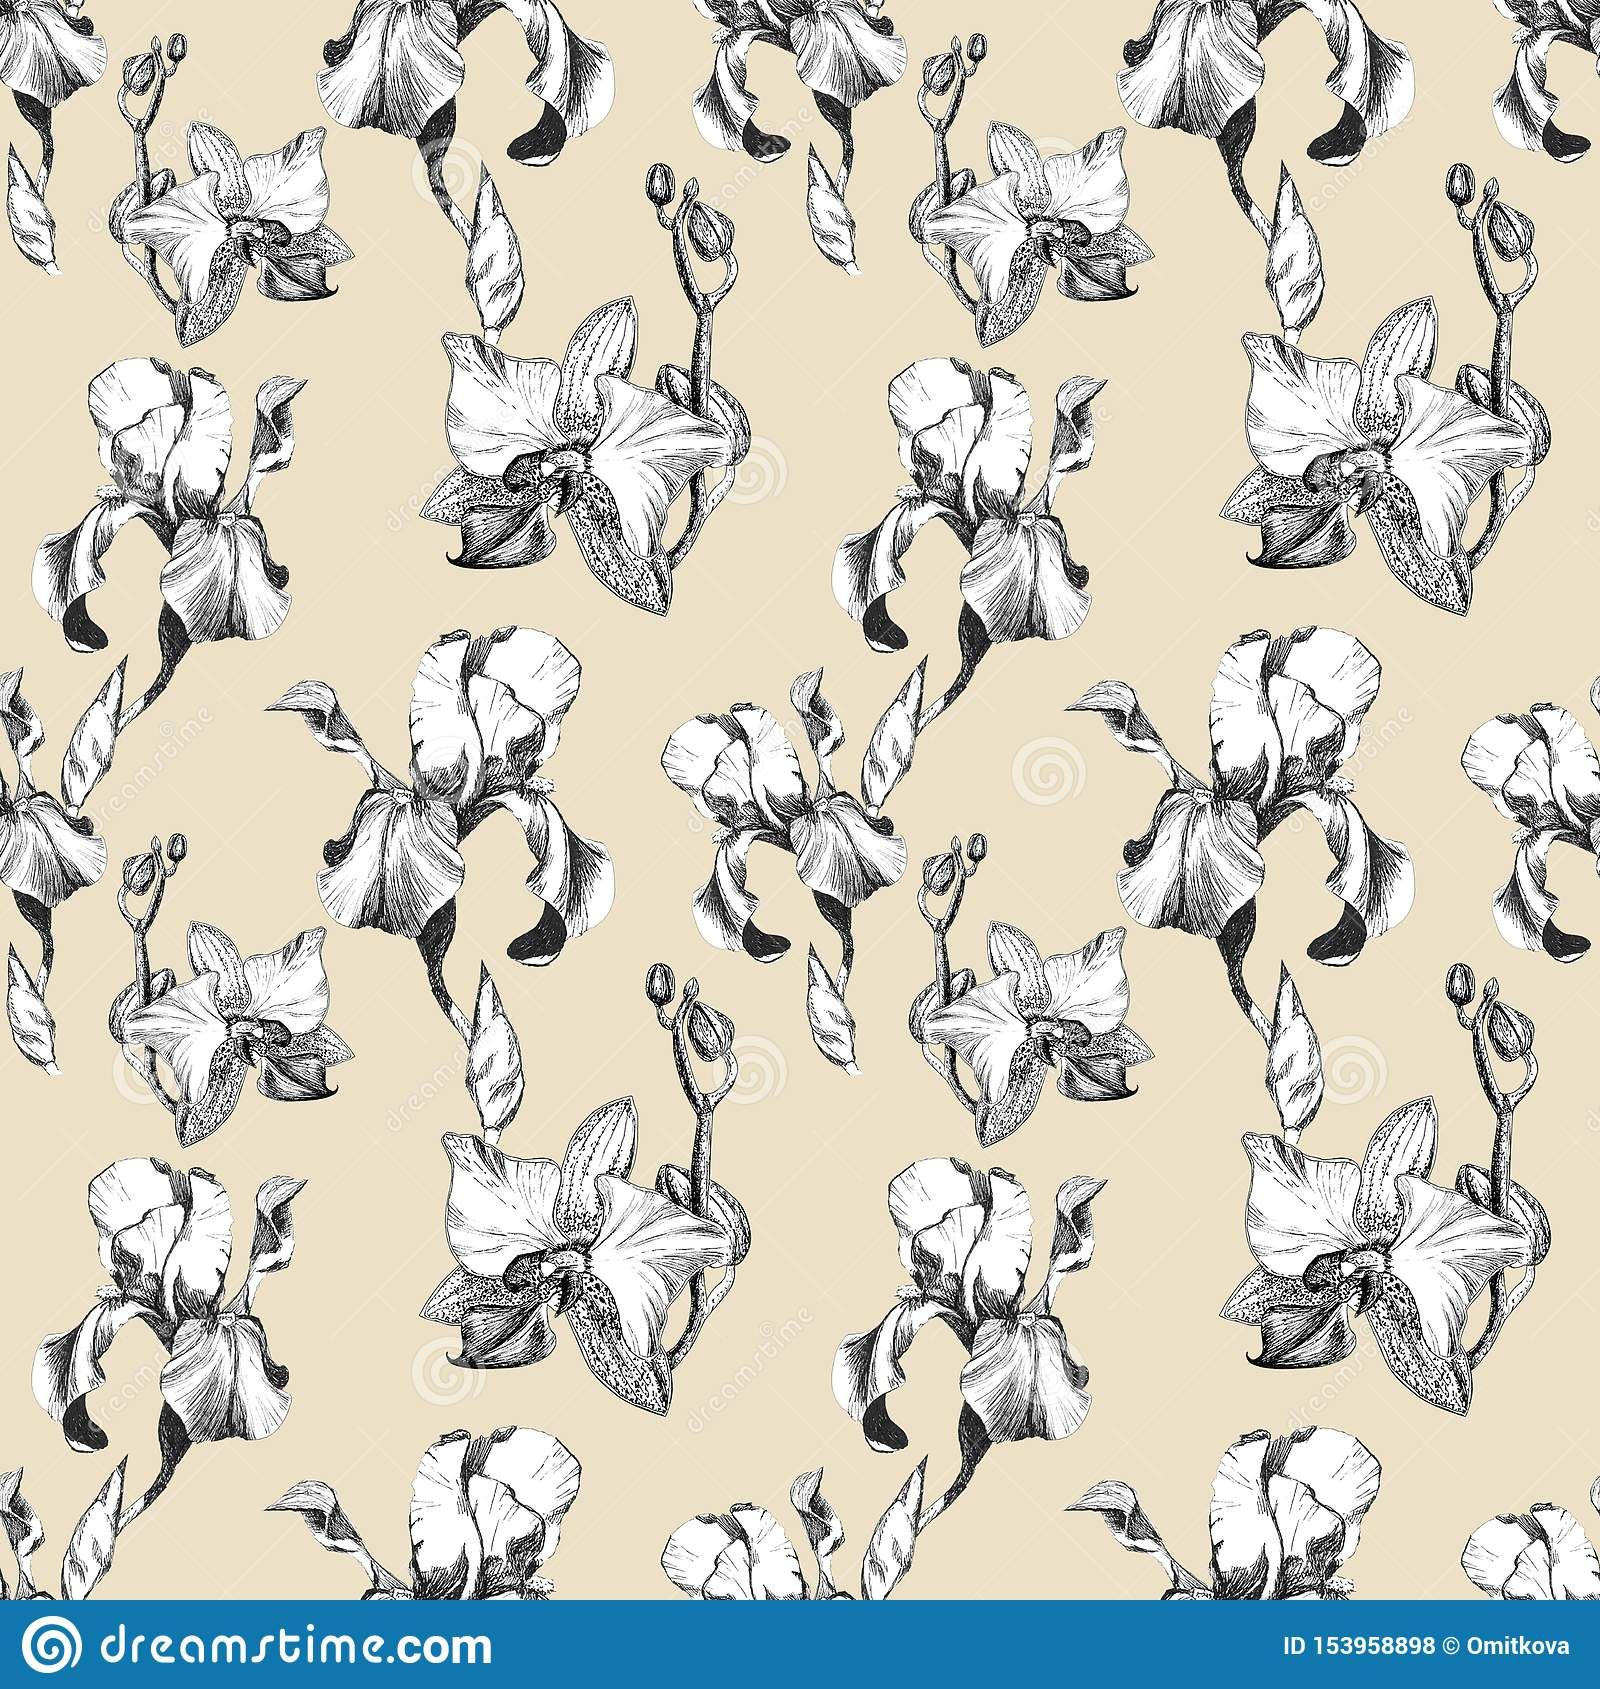 Floral seamless pattern with hand drawn ink iris and orchid flowers on beige background. Flowers lined up in harmonious